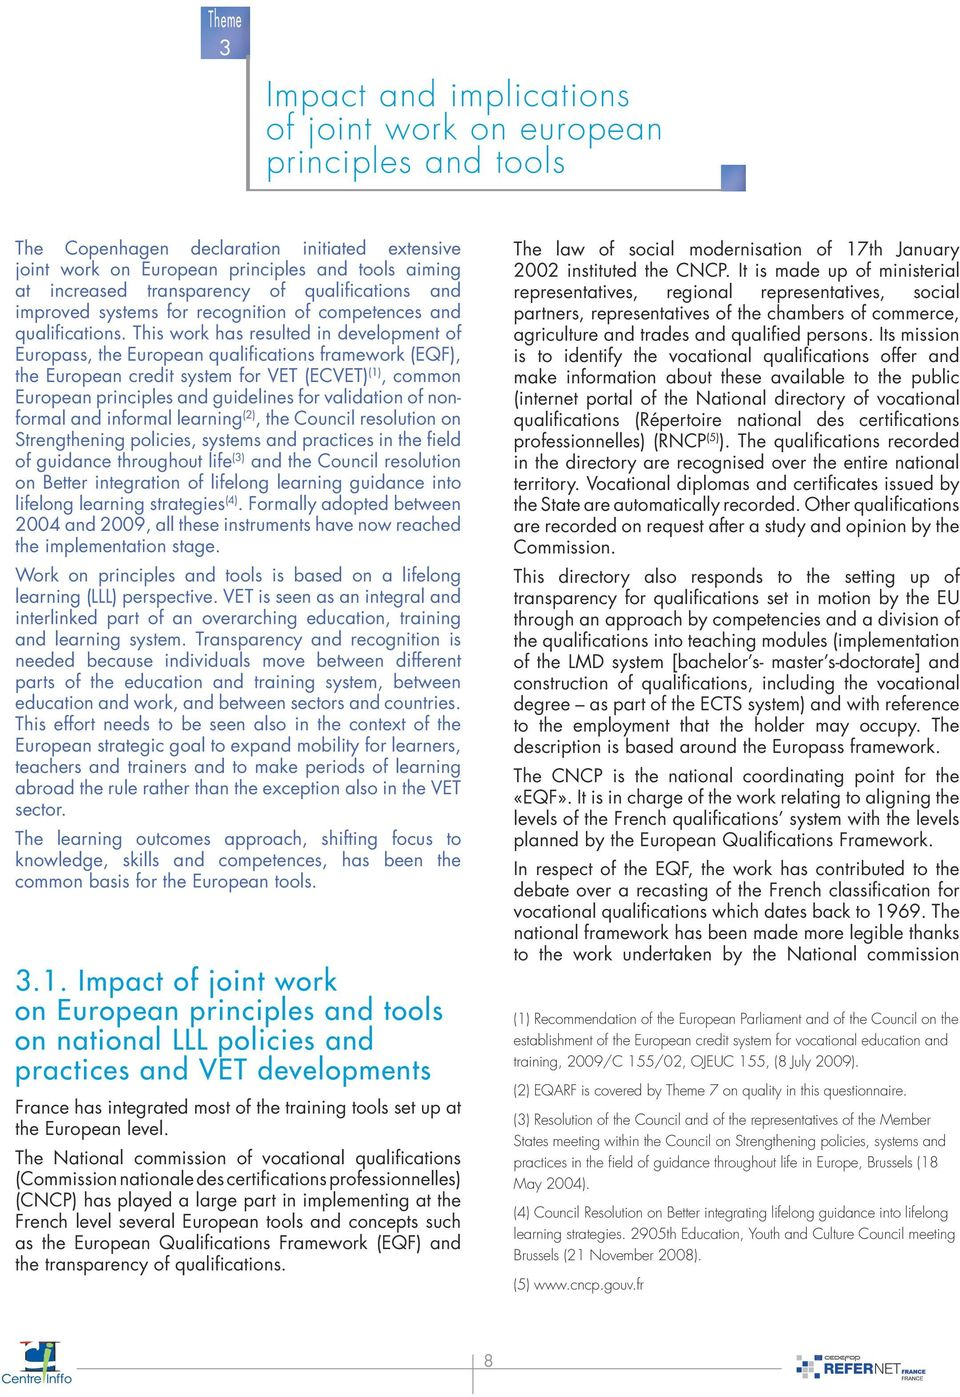 This work has resulted in development of Europass, the European qualifications framework (EQF), the European credit system for VET (ECVET) (1), common European principles and guidelines for